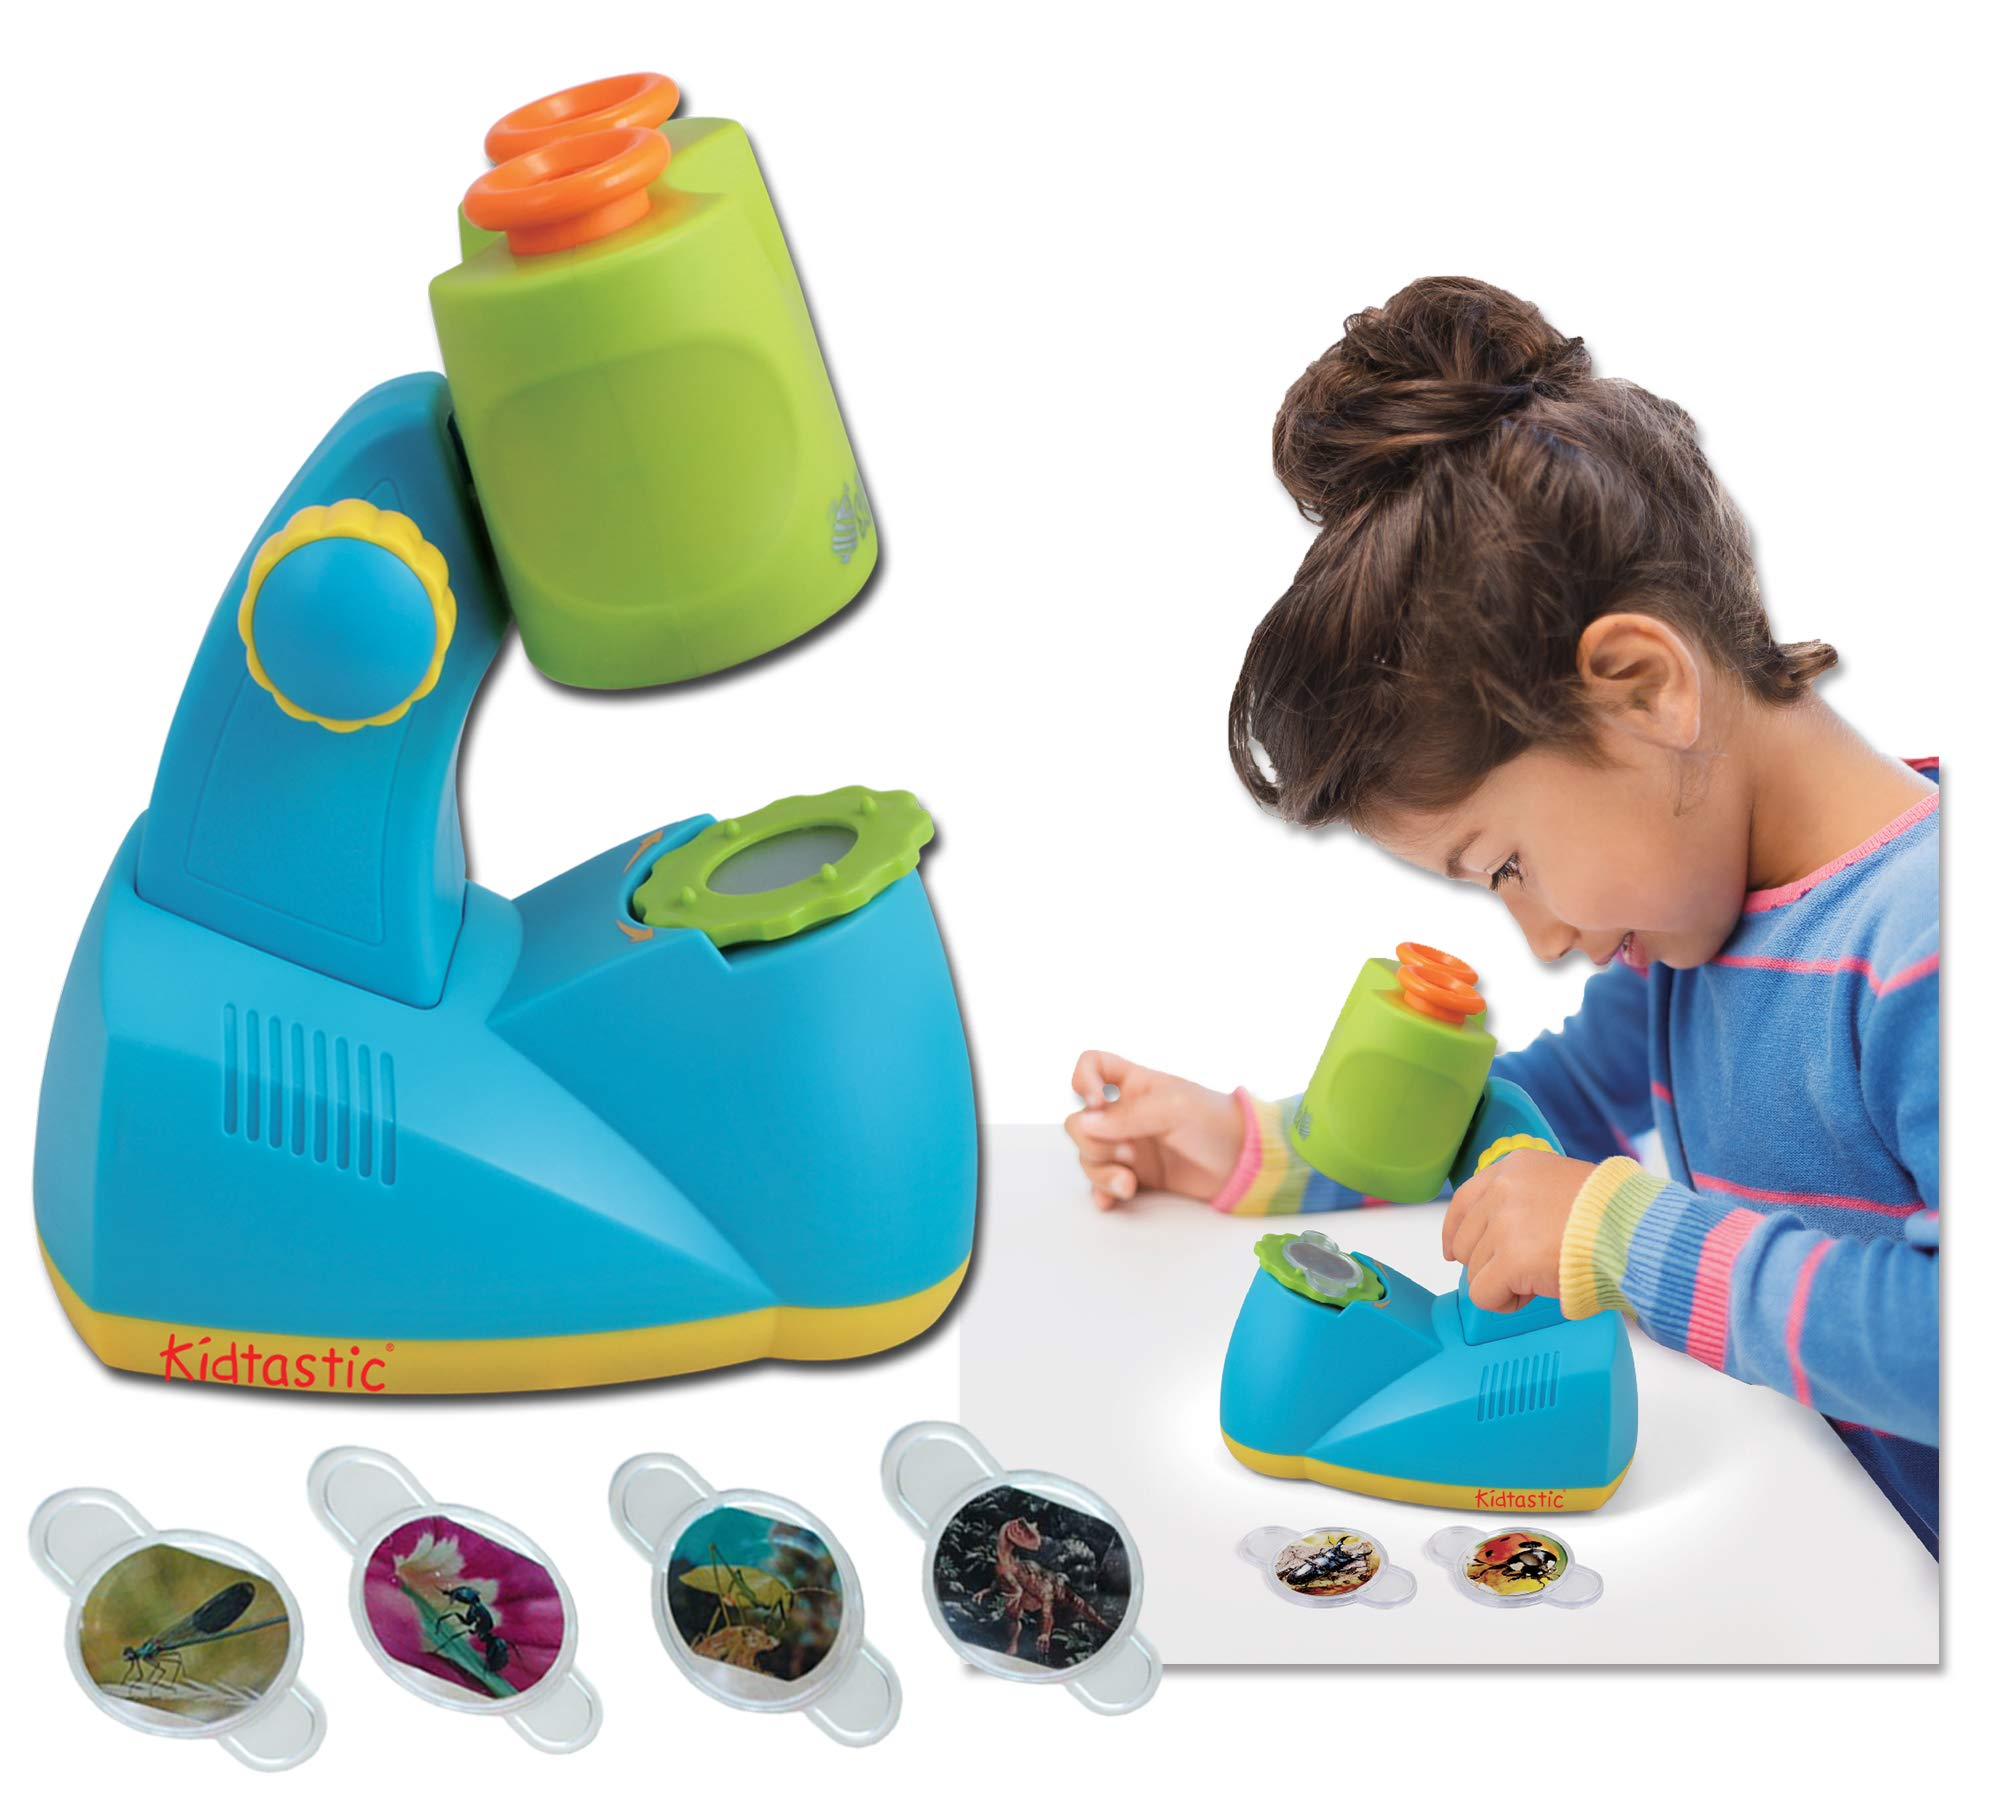 Kidtastic Microscope Science Kit for Kids - Fun Learning Toys for Preschoolers - STEM Toy for 3 Year olds - with 12 Slides Animals & Nature, 8X Zoom, LED Light - for Ages 3, 4, 5, 6 and up by Kidtastic (Image #1)